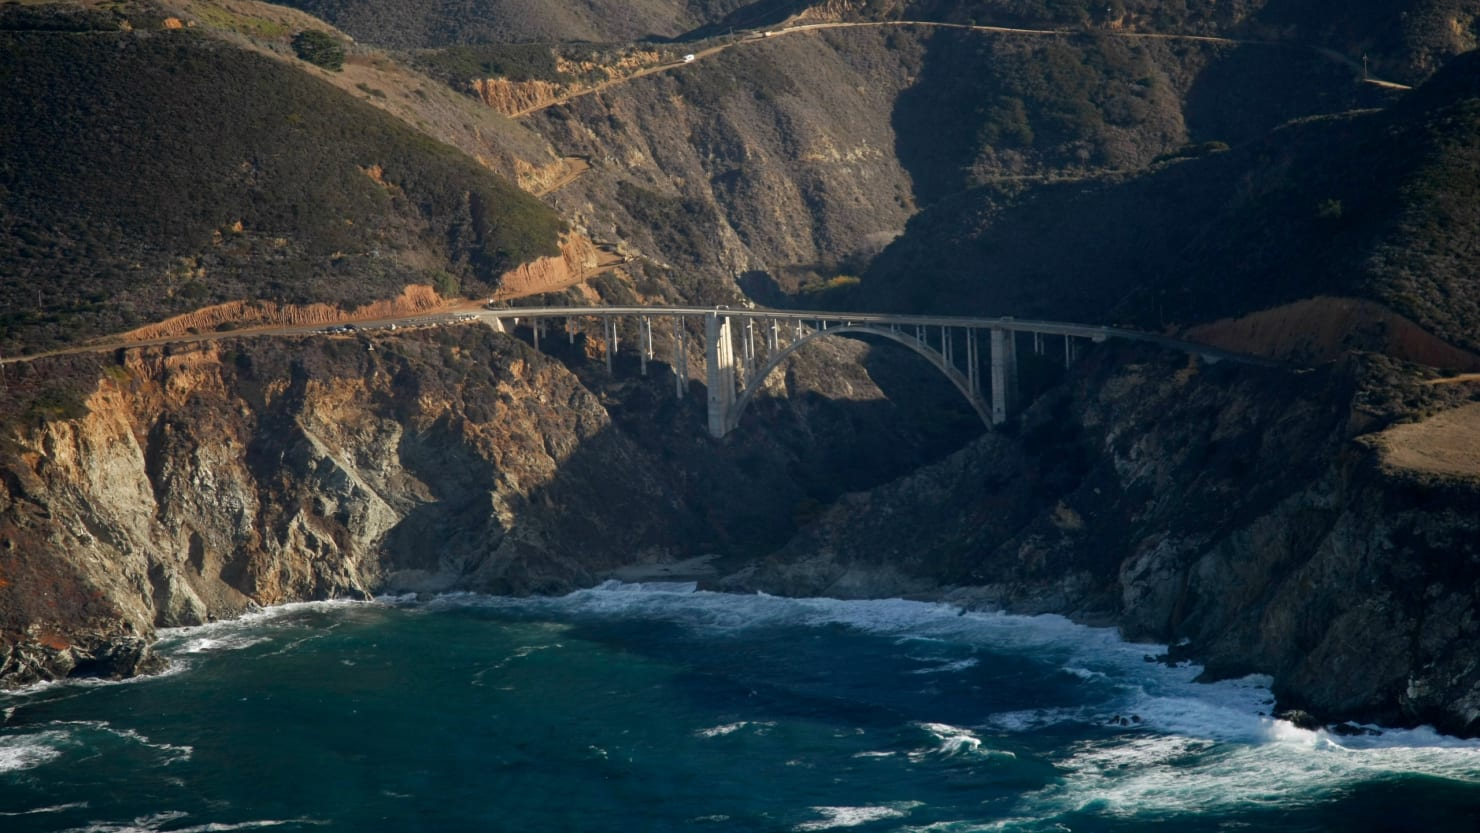 5 Star Auto >> Landslide Buries Stretch of California's Iconic Highway 1